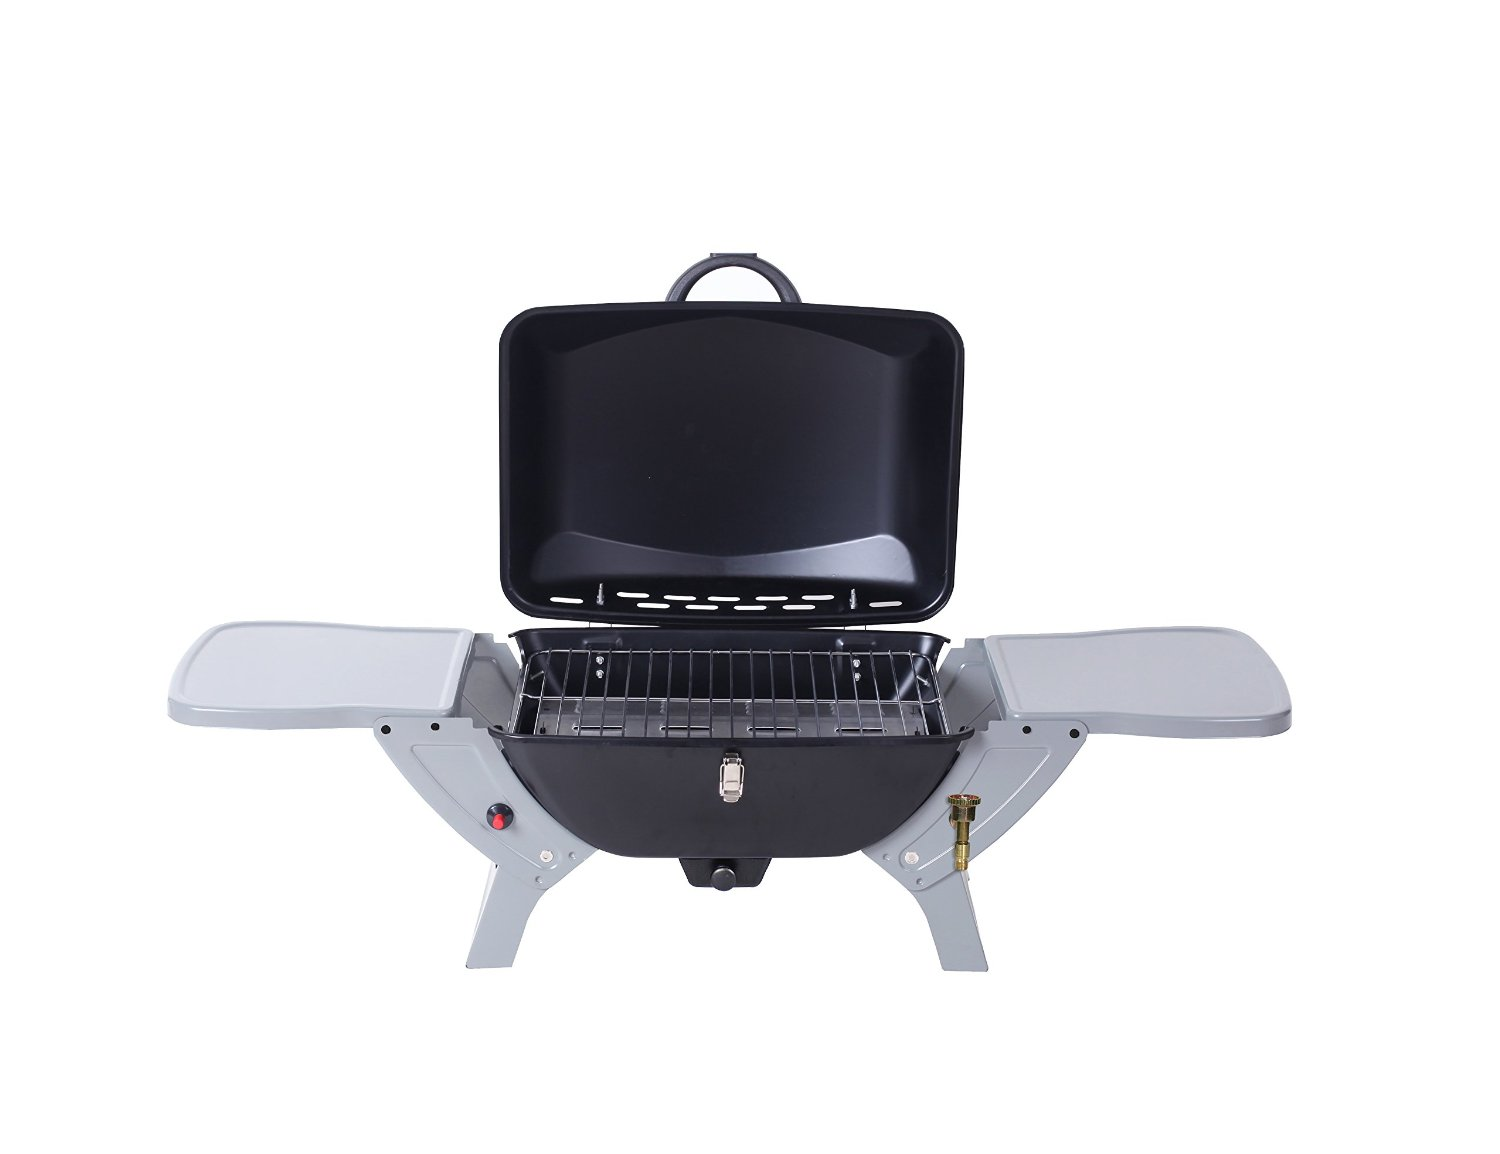 50mbar barbecue au gaz bbq gril de table camping gas grill pliage grill pliable ebay. Black Bedroom Furniture Sets. Home Design Ideas